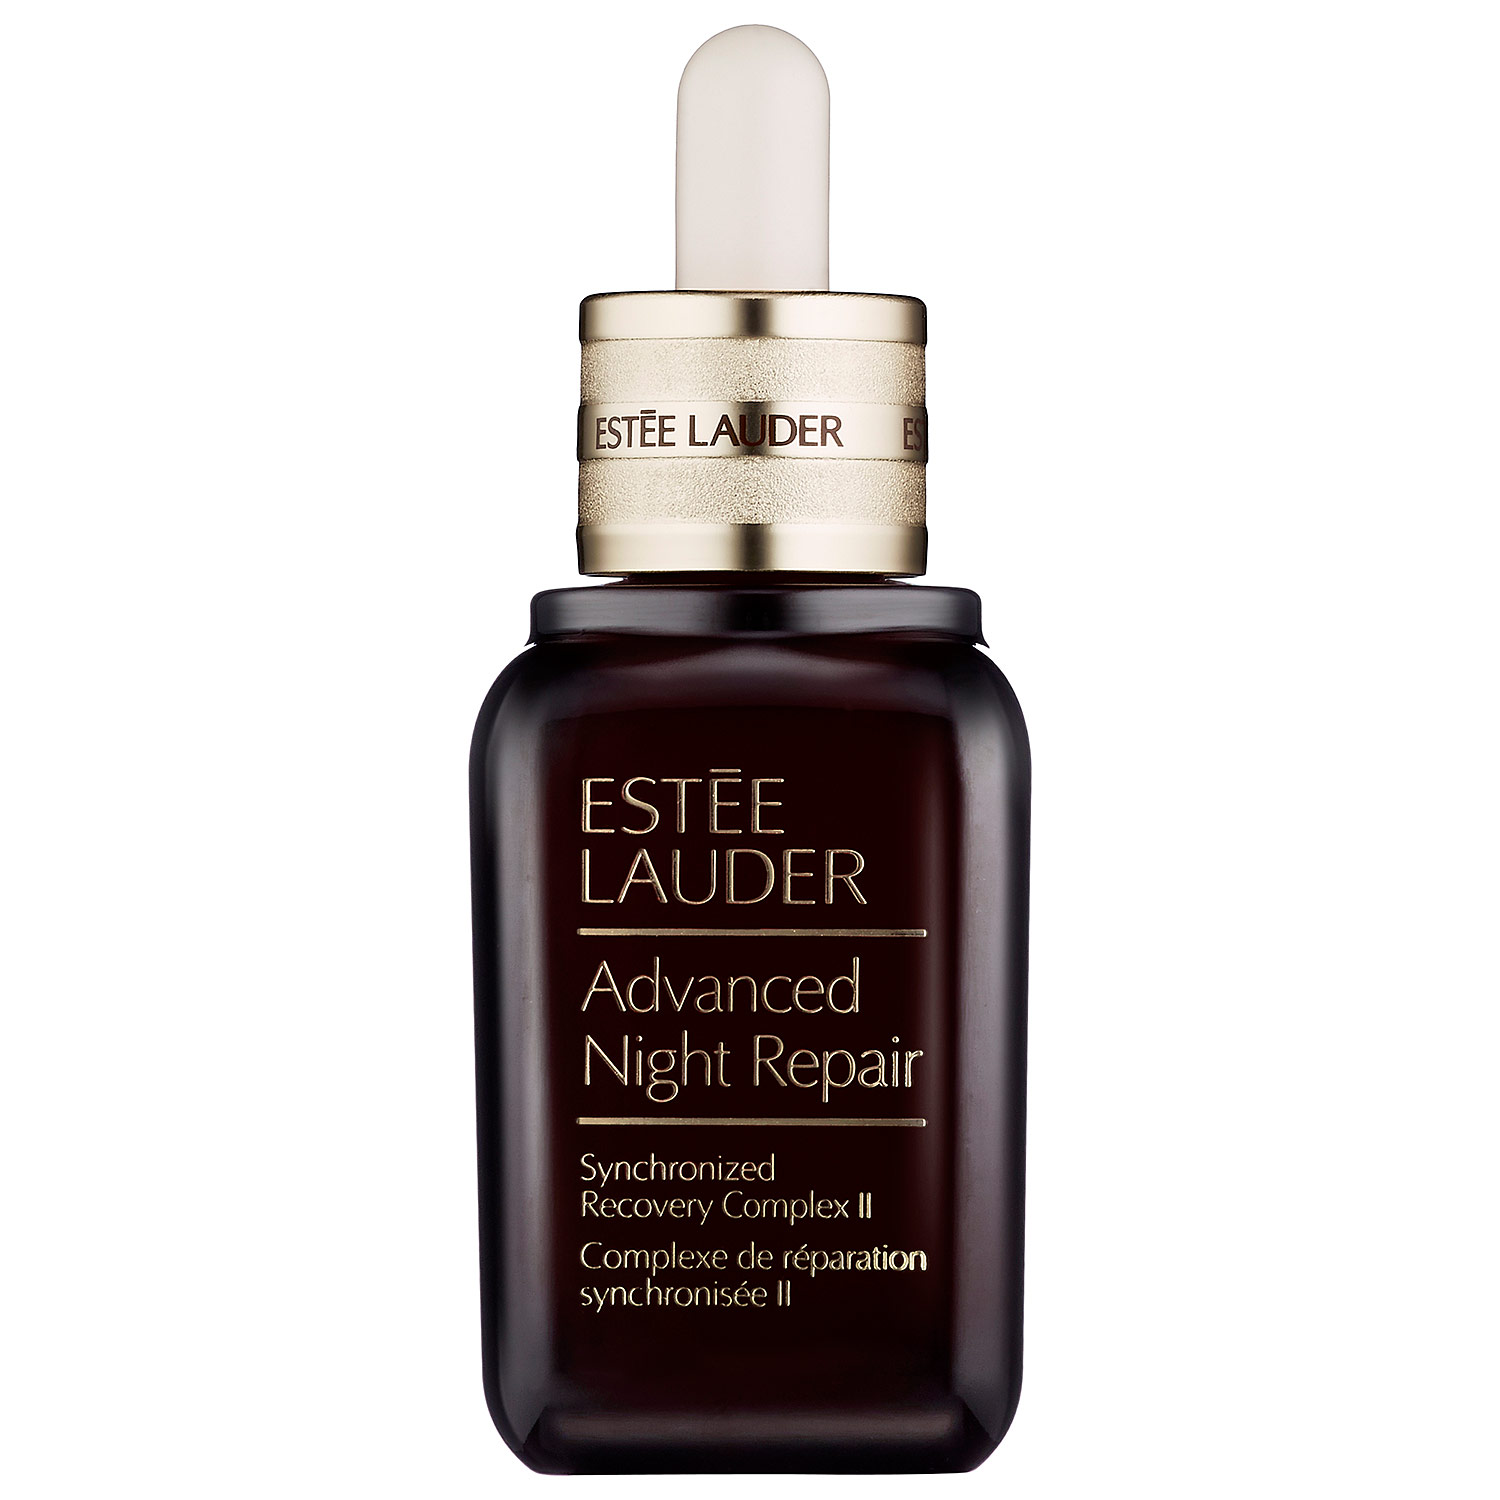 ($100 Value) Estee Lauder Advanced Night Repair Synchronized Recovery Complex II Face Serum, 1.7 Oz